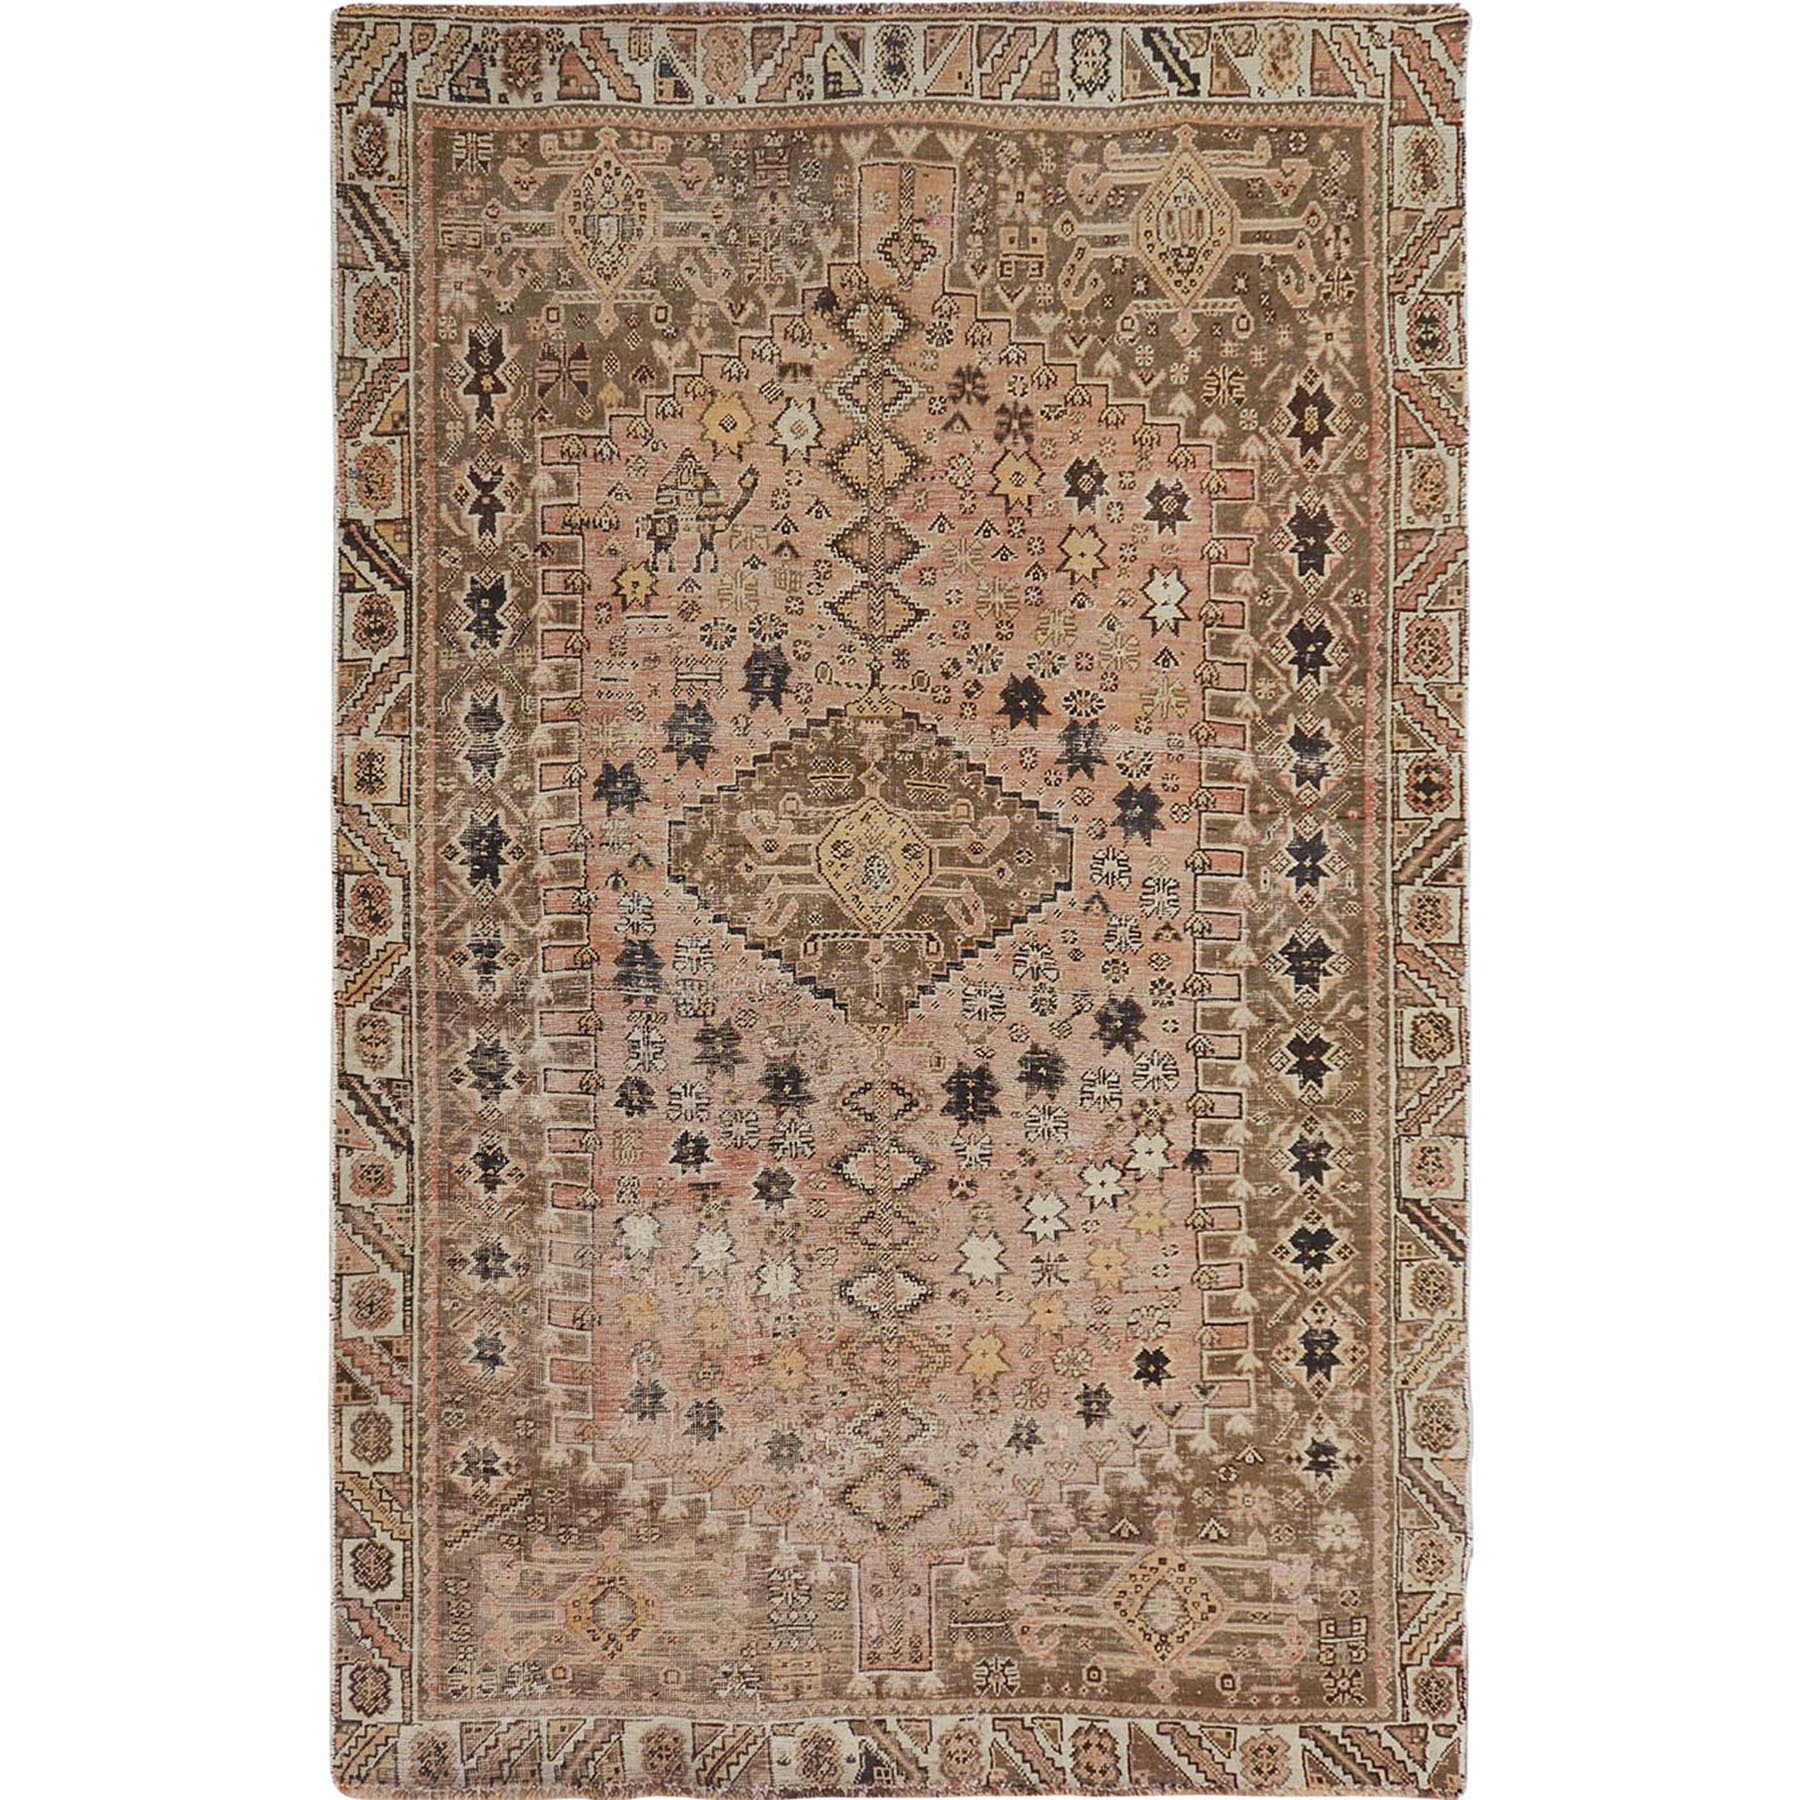 "4'3""x6'2"" Faded Colors Worn Down And Old Persian Qashqai Pure Wool Hand Woven Oriental Rug"